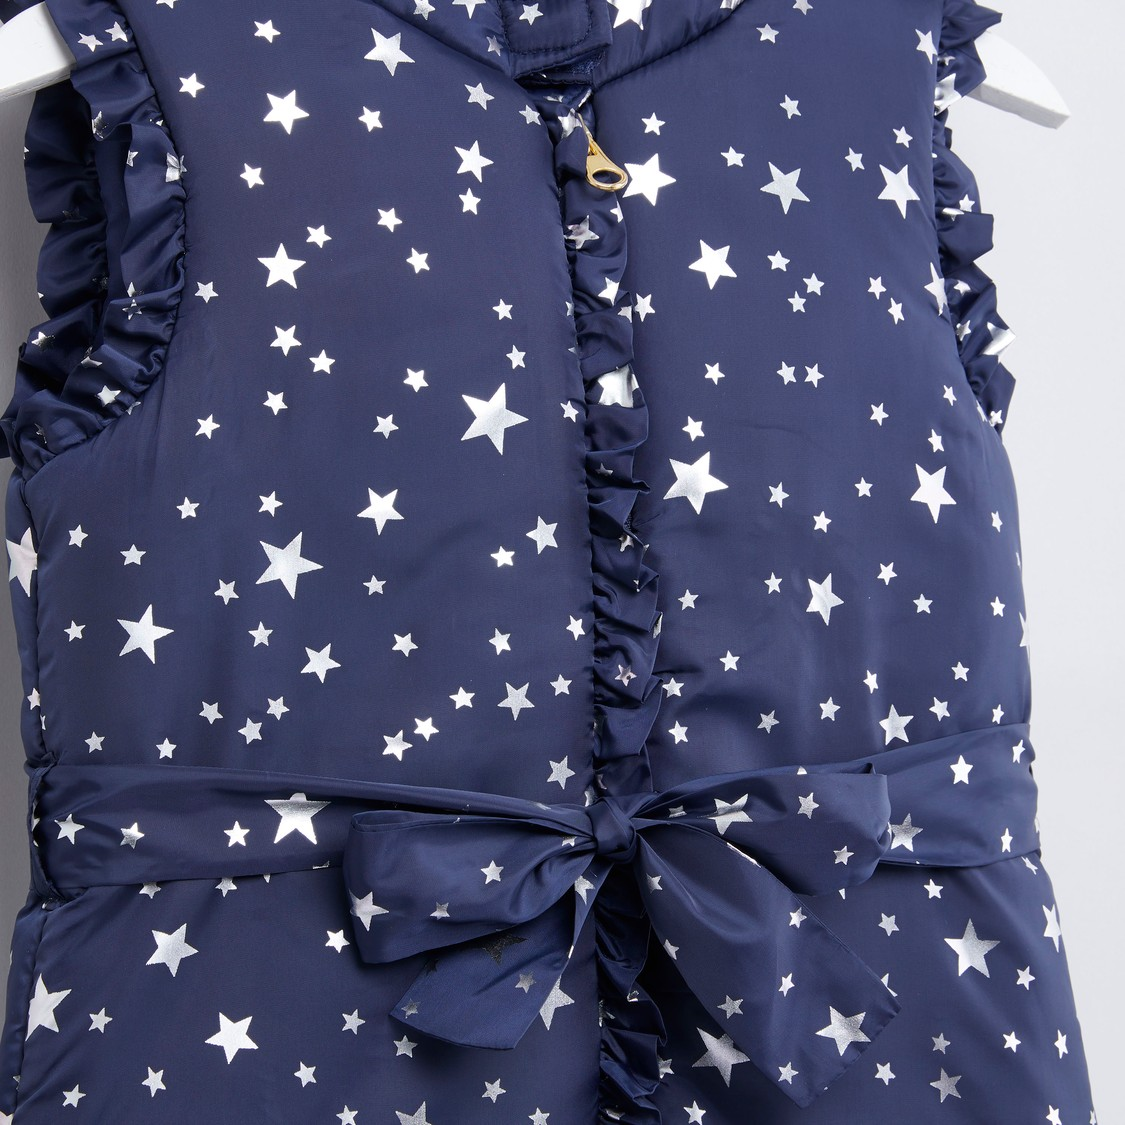 Star Printed Sleeveless Puffer Jacket with Zip Closure